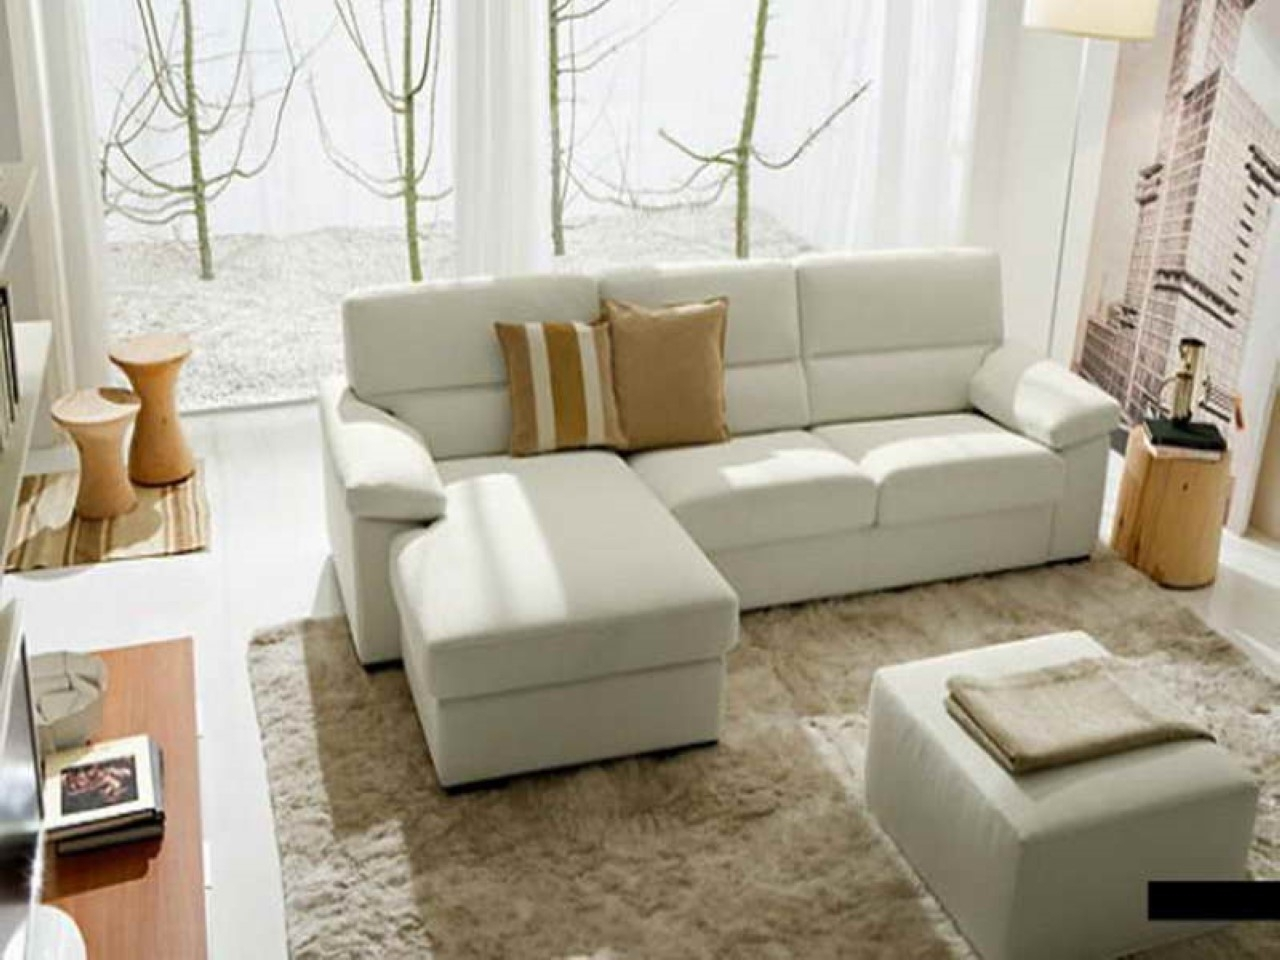 Sofa : Living Room Sofa Sectional Couches Under 700 Affordable Within Most Current Sectional Sofas Under  (View 6 of 15)